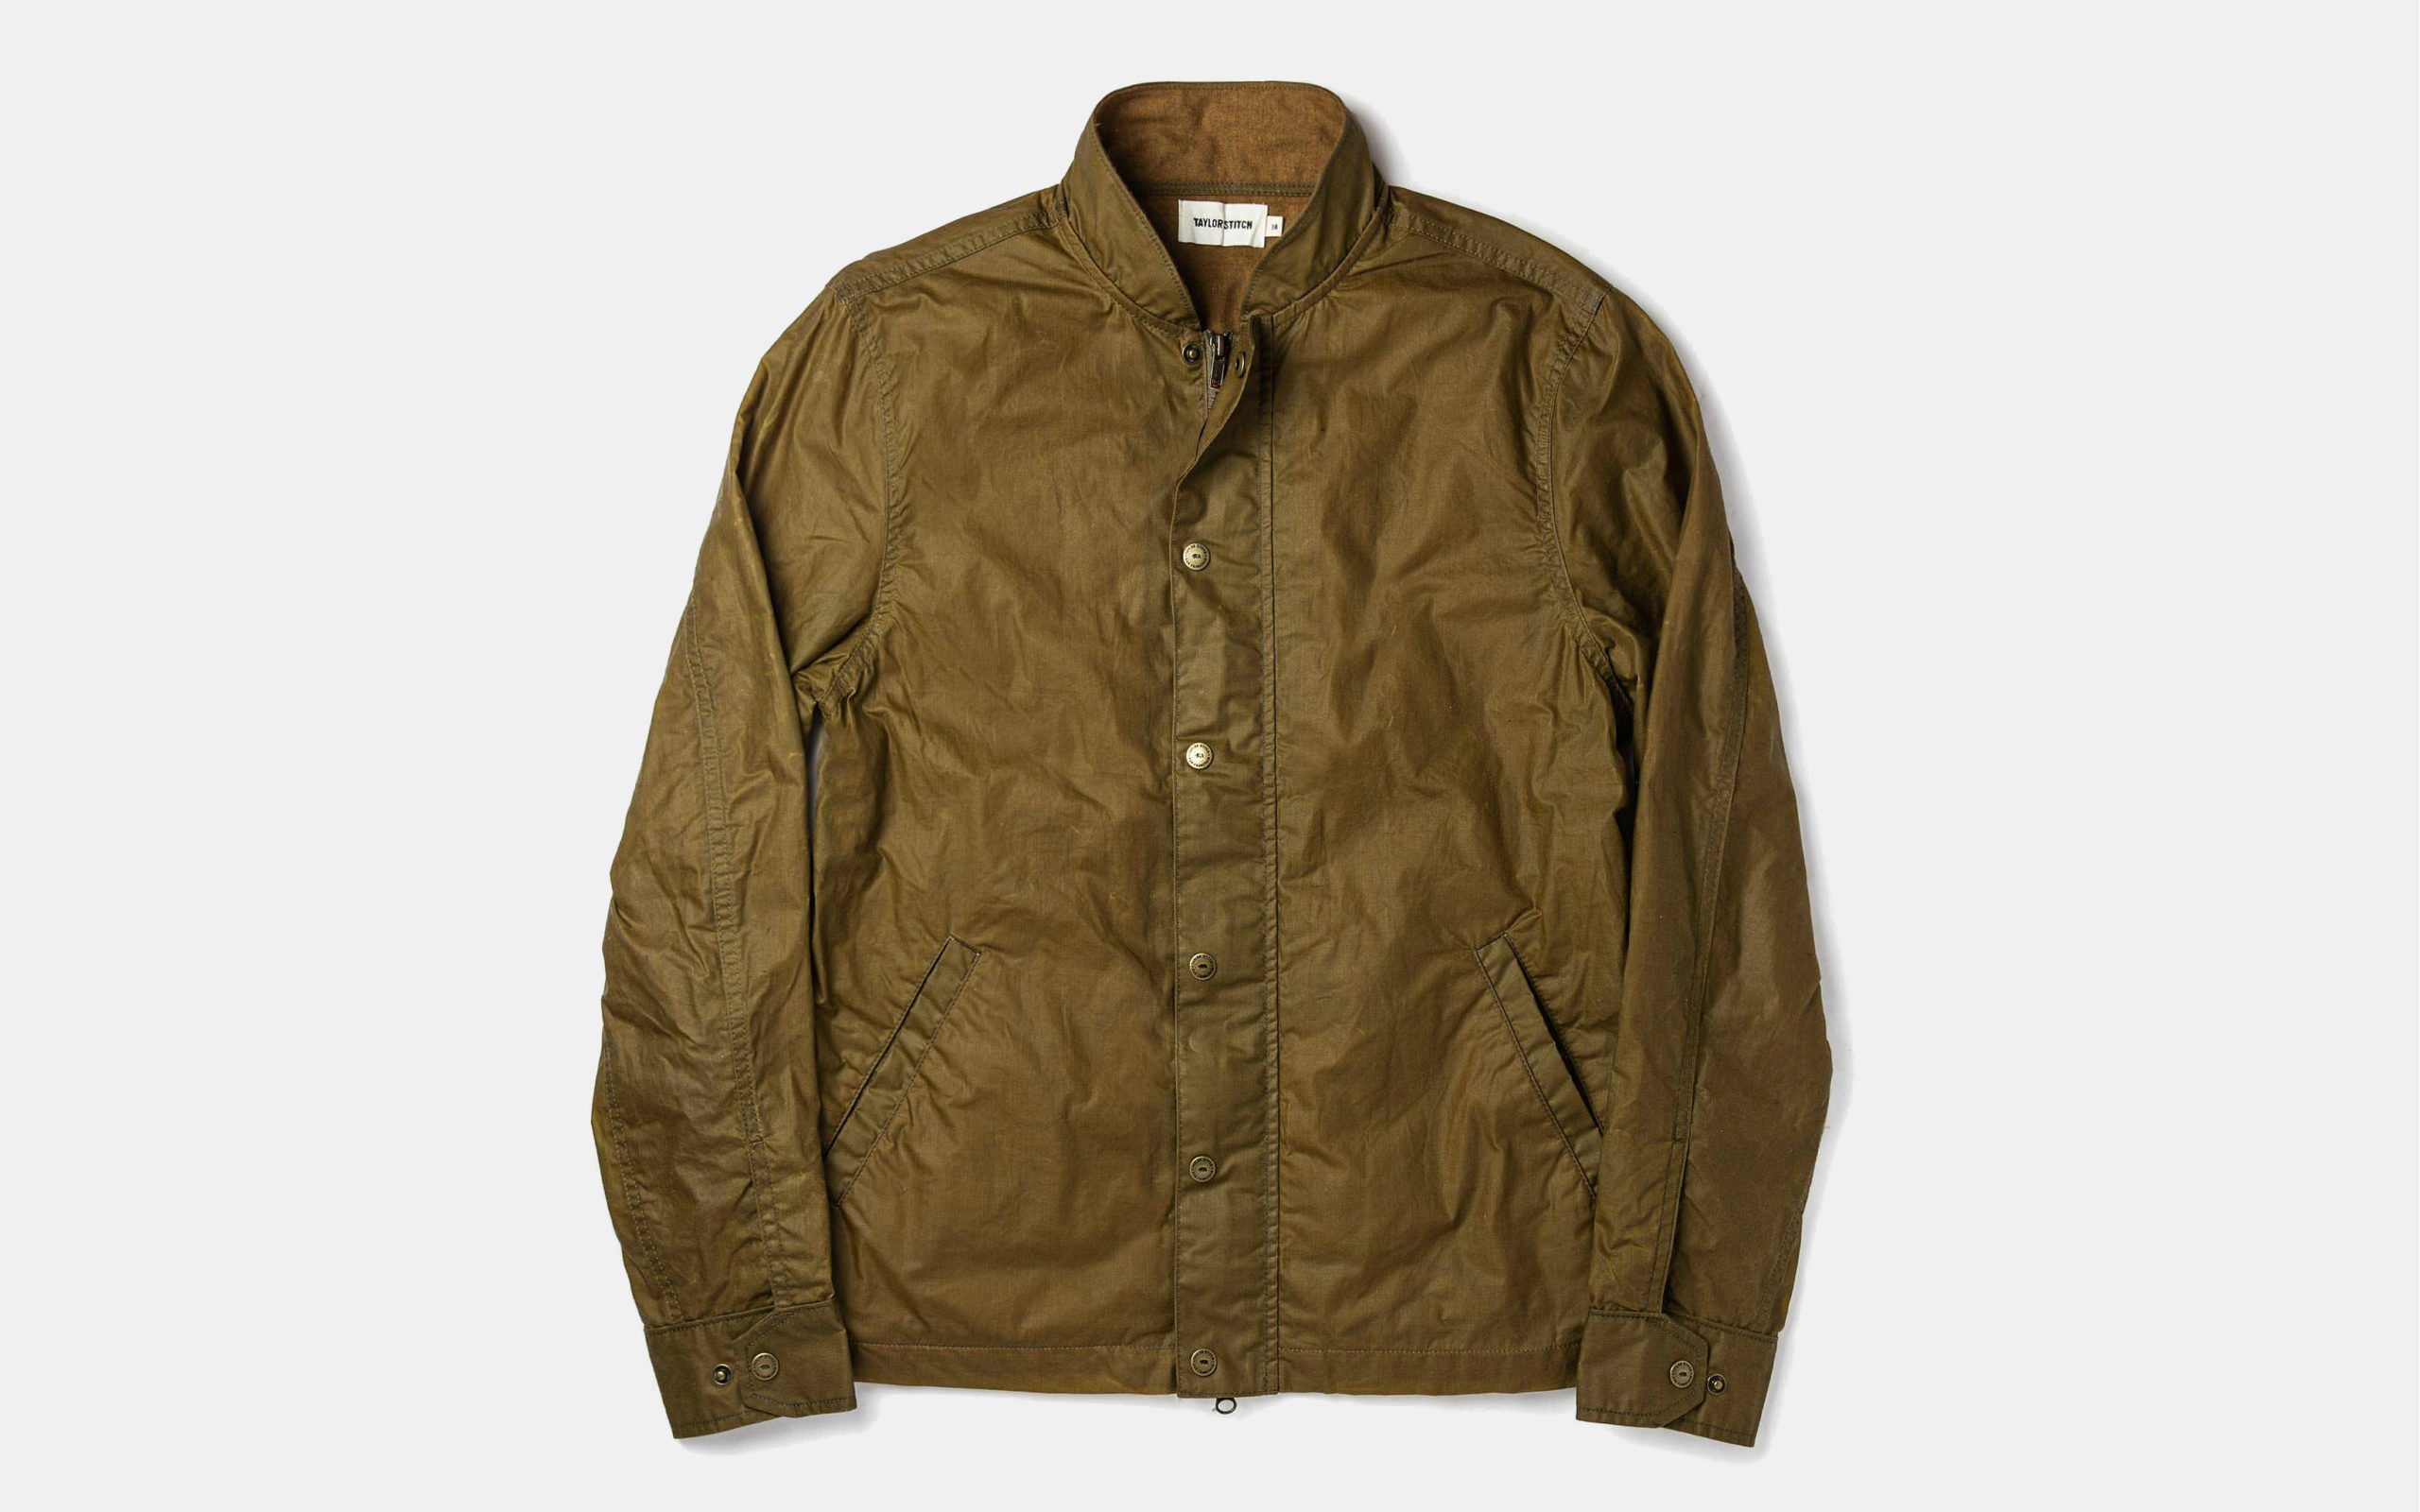 Taylor Stitch Bomber Jacket in Field Tan Wax Canvas